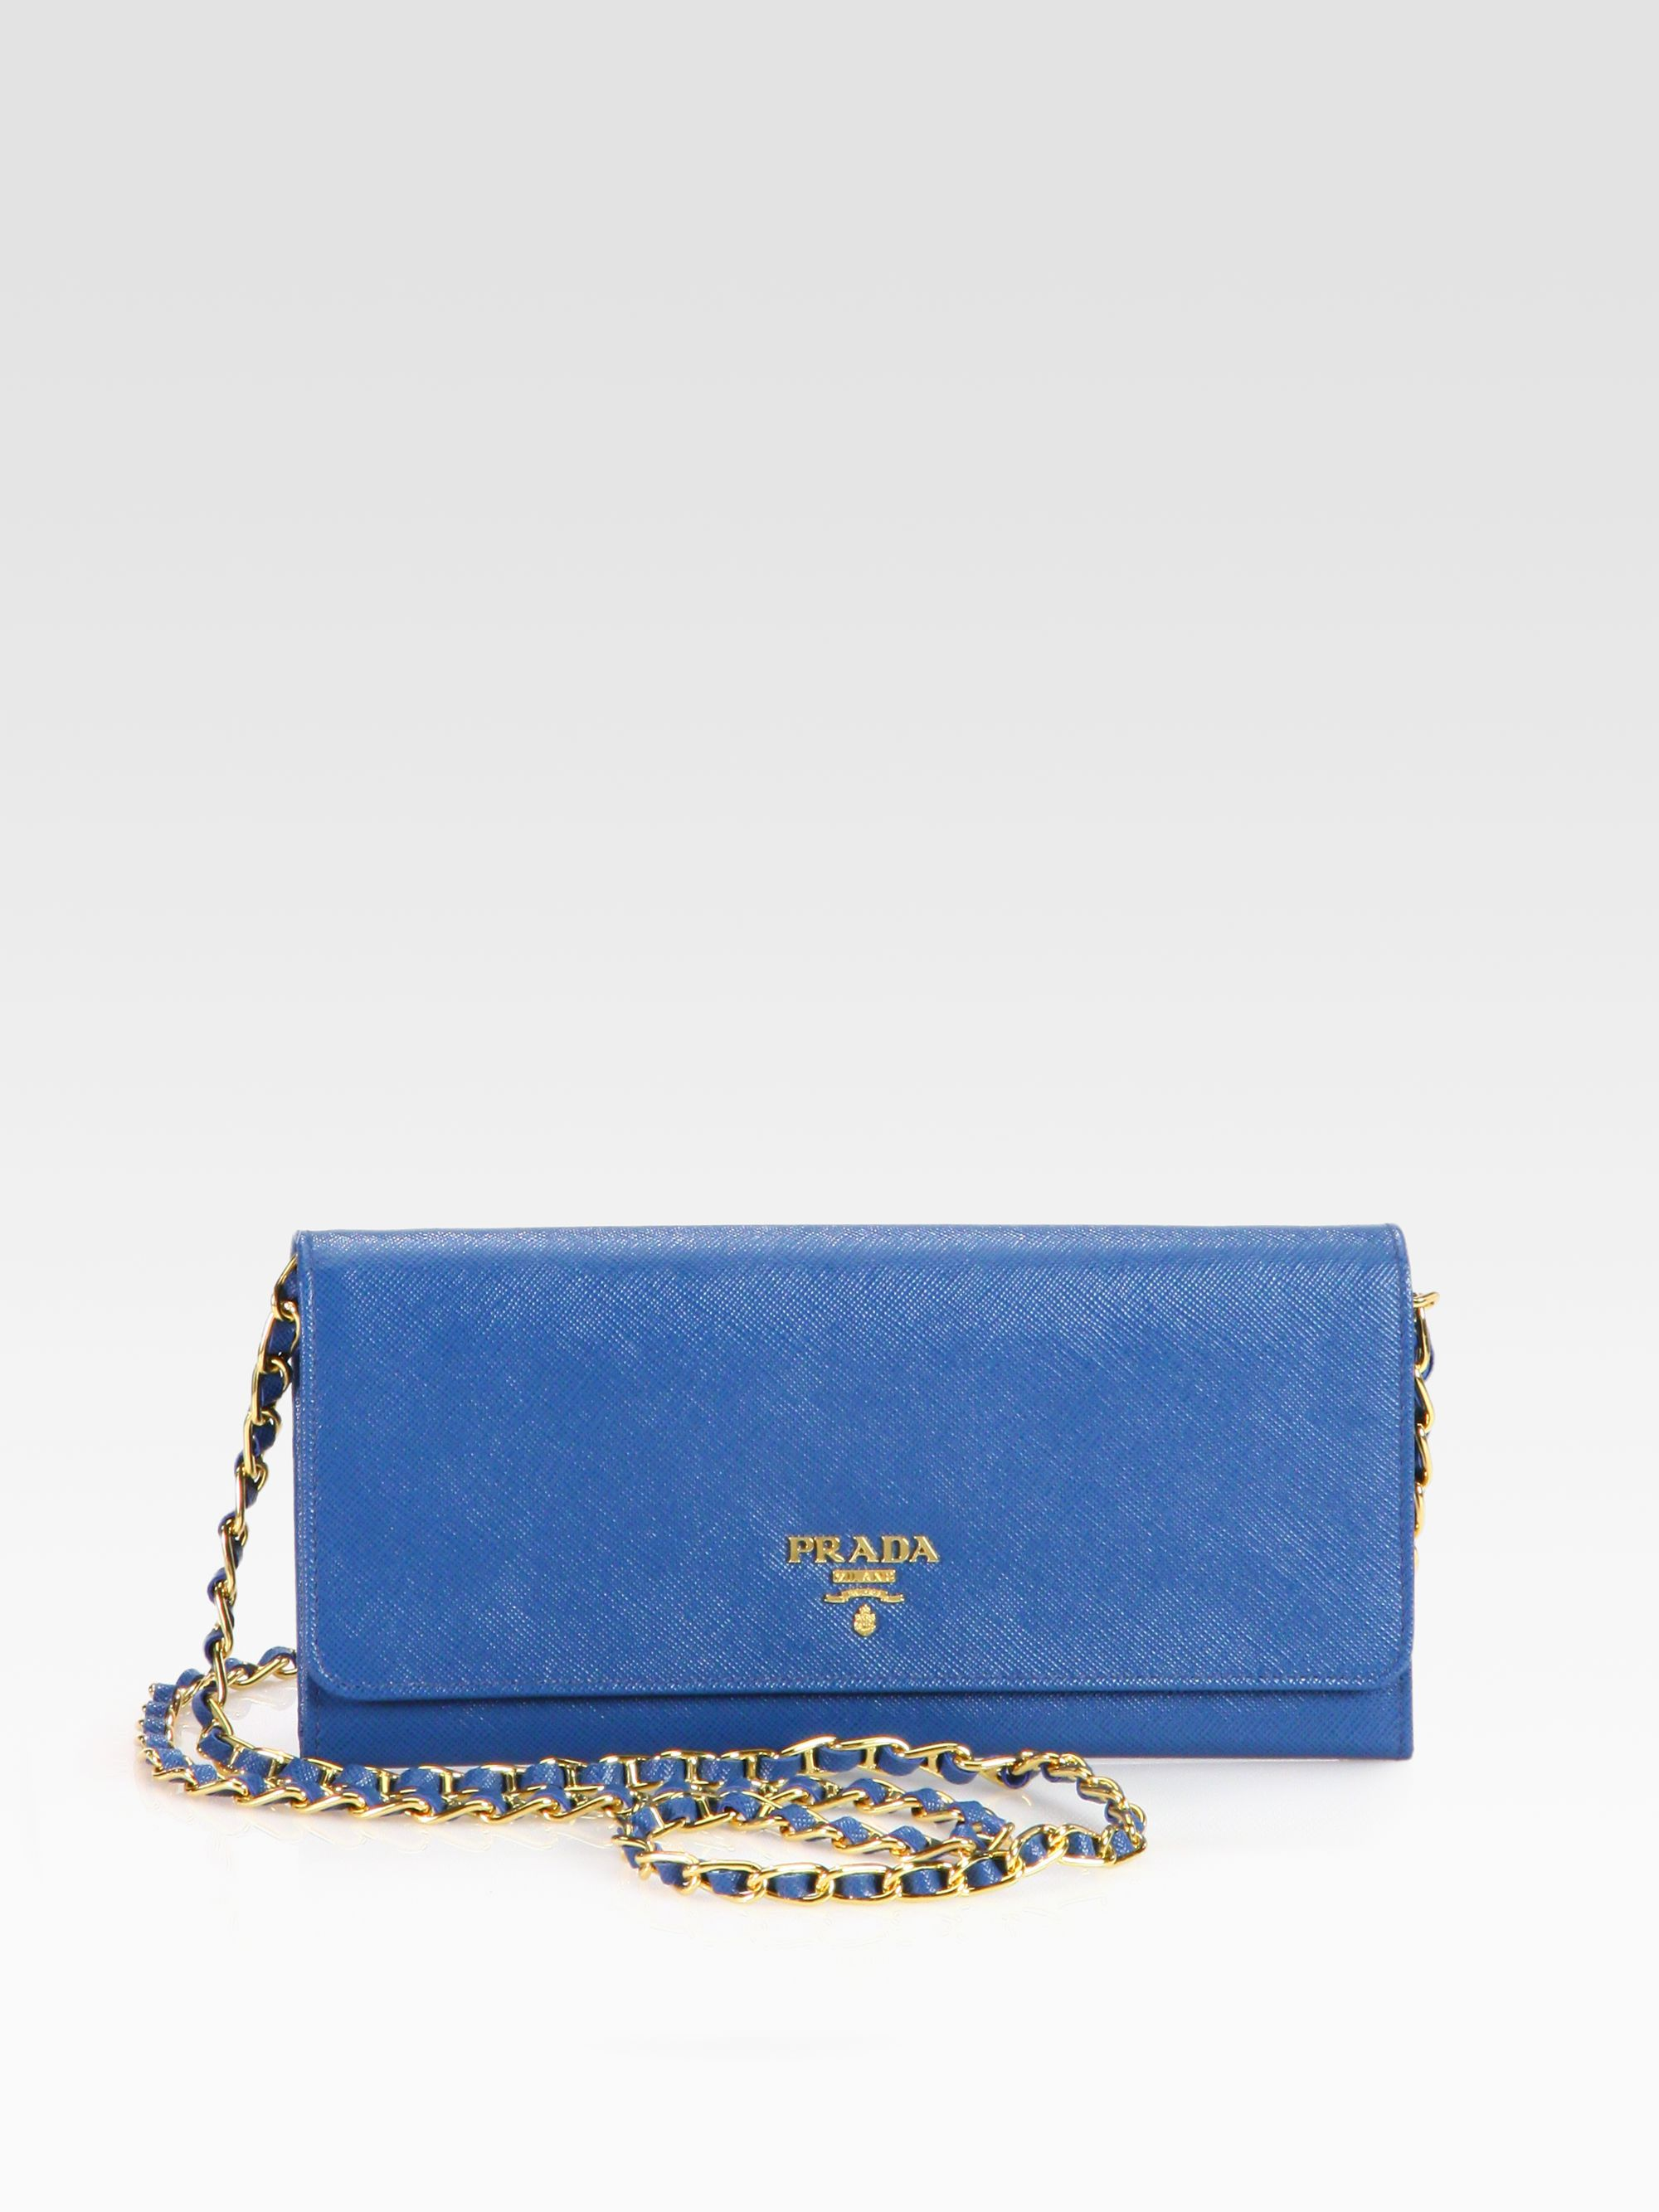 5d75d388a4b8 Prada Saffiano Metal Oro Wallet with Chain in Blue - Lyst